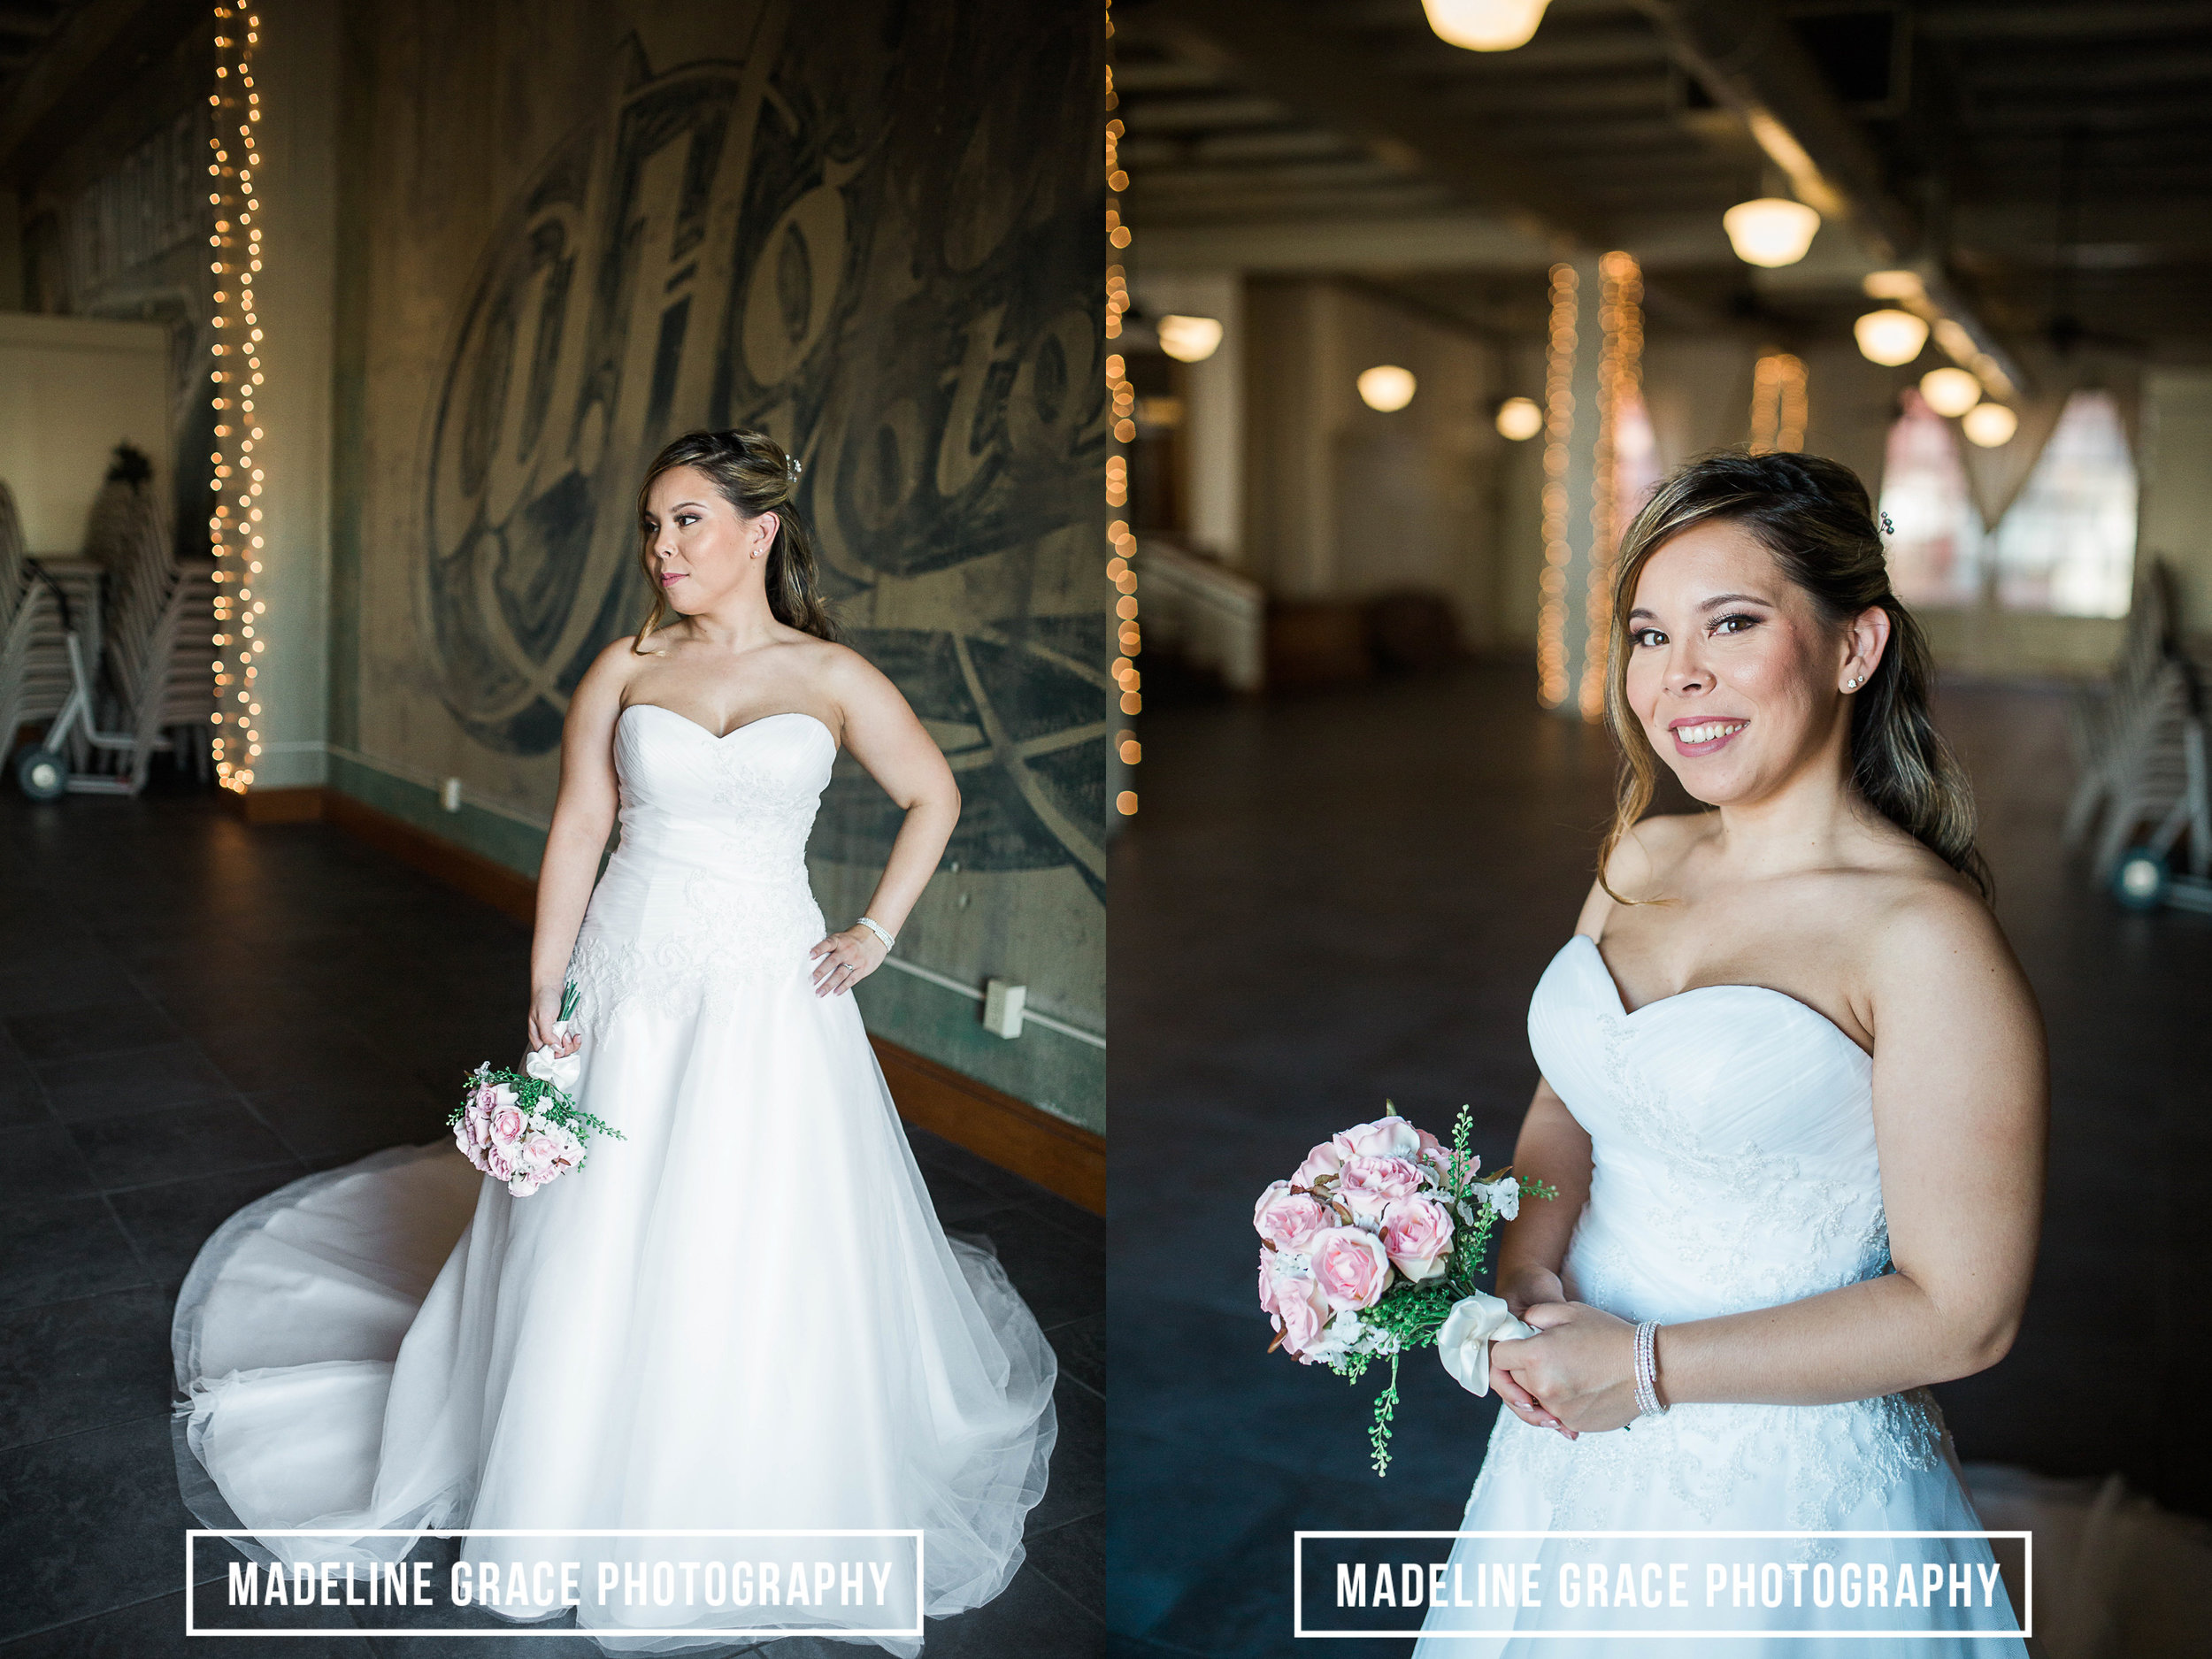 MGP-Sarah-Bridals-Blog-9 copy.jpg